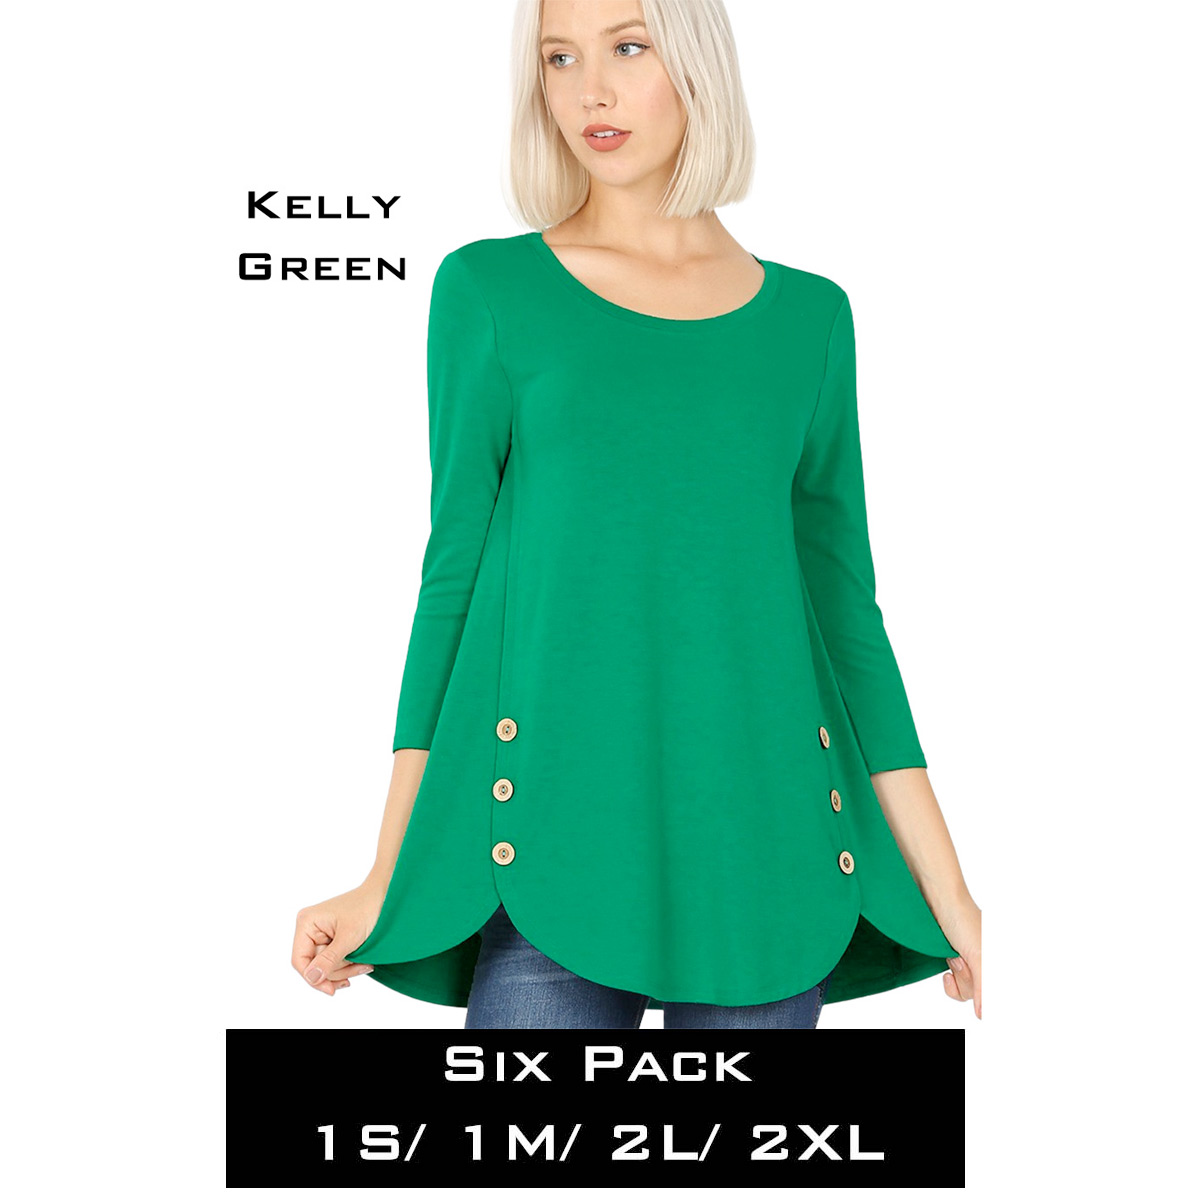 KELLY GREEN (SIX PACK) 3/4 Sleeve Side Wood Buttons Top 2032(1S,1M,2L,2XL)